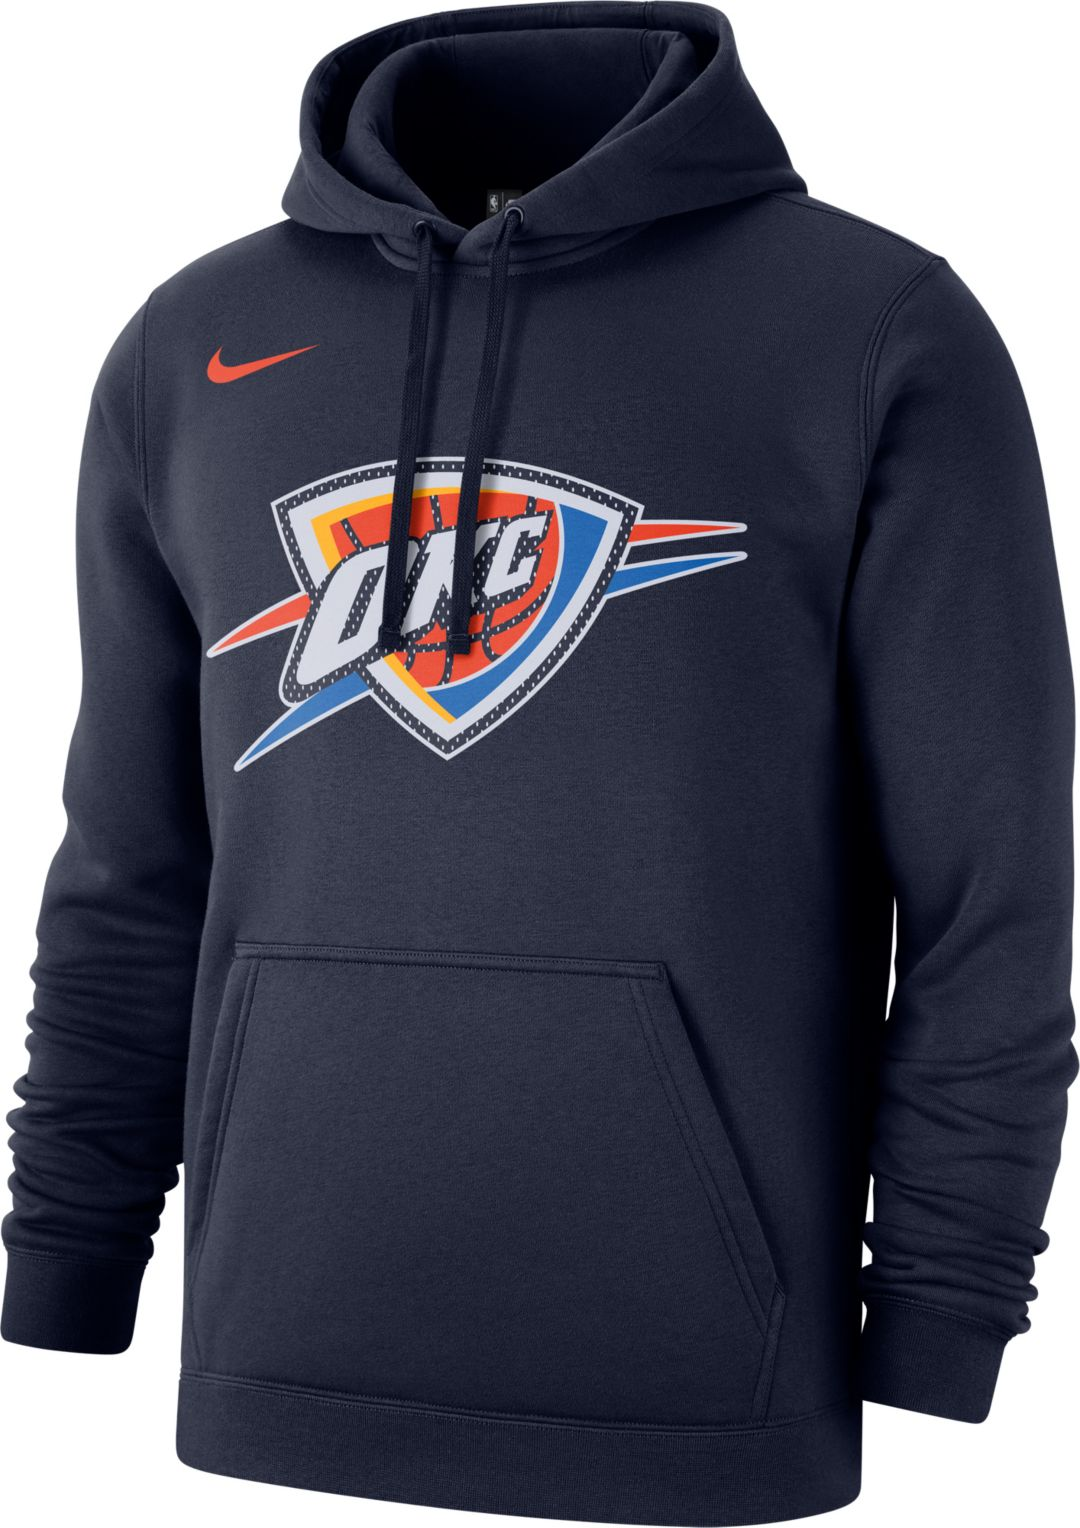 size 40 51a91 1cae2 Nike Men's Oklahoma City Thunder Pullover Hoodie